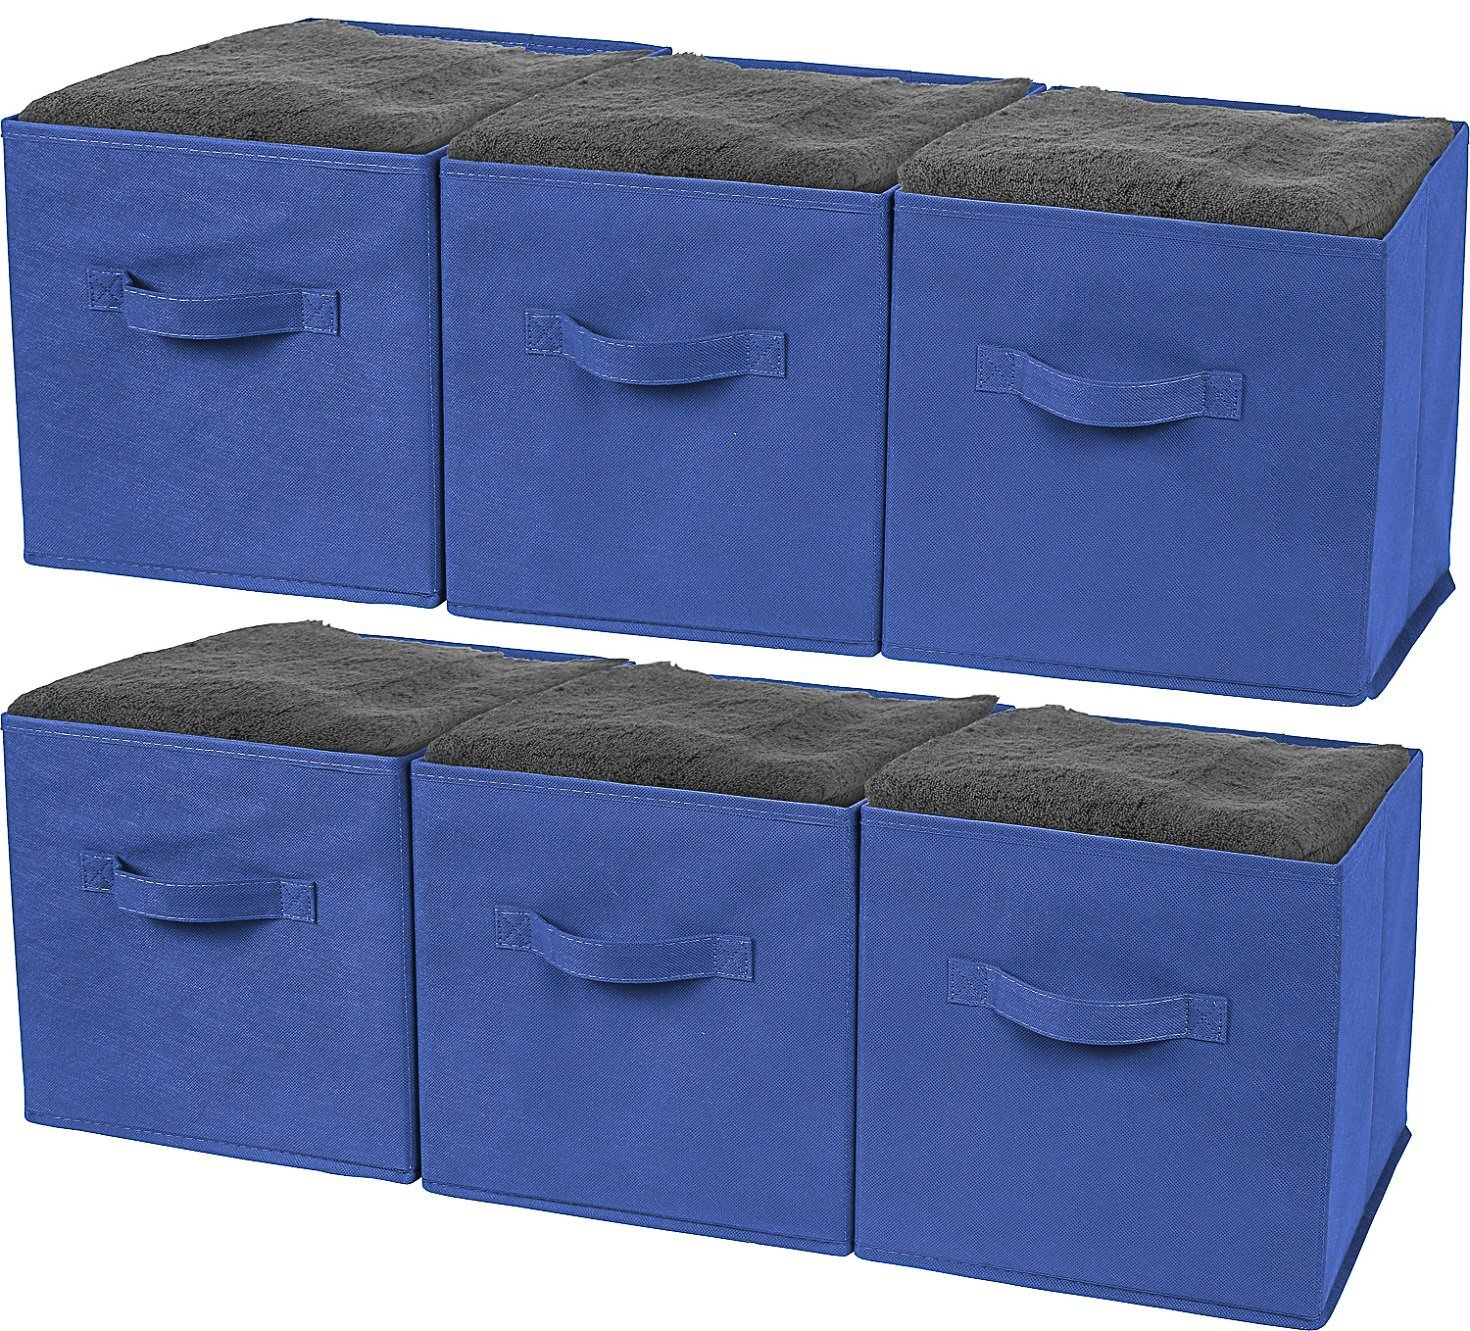 Greenco Foldable Storage Cubes Non-woven Fabric -6 Pack-(Royal Blue)